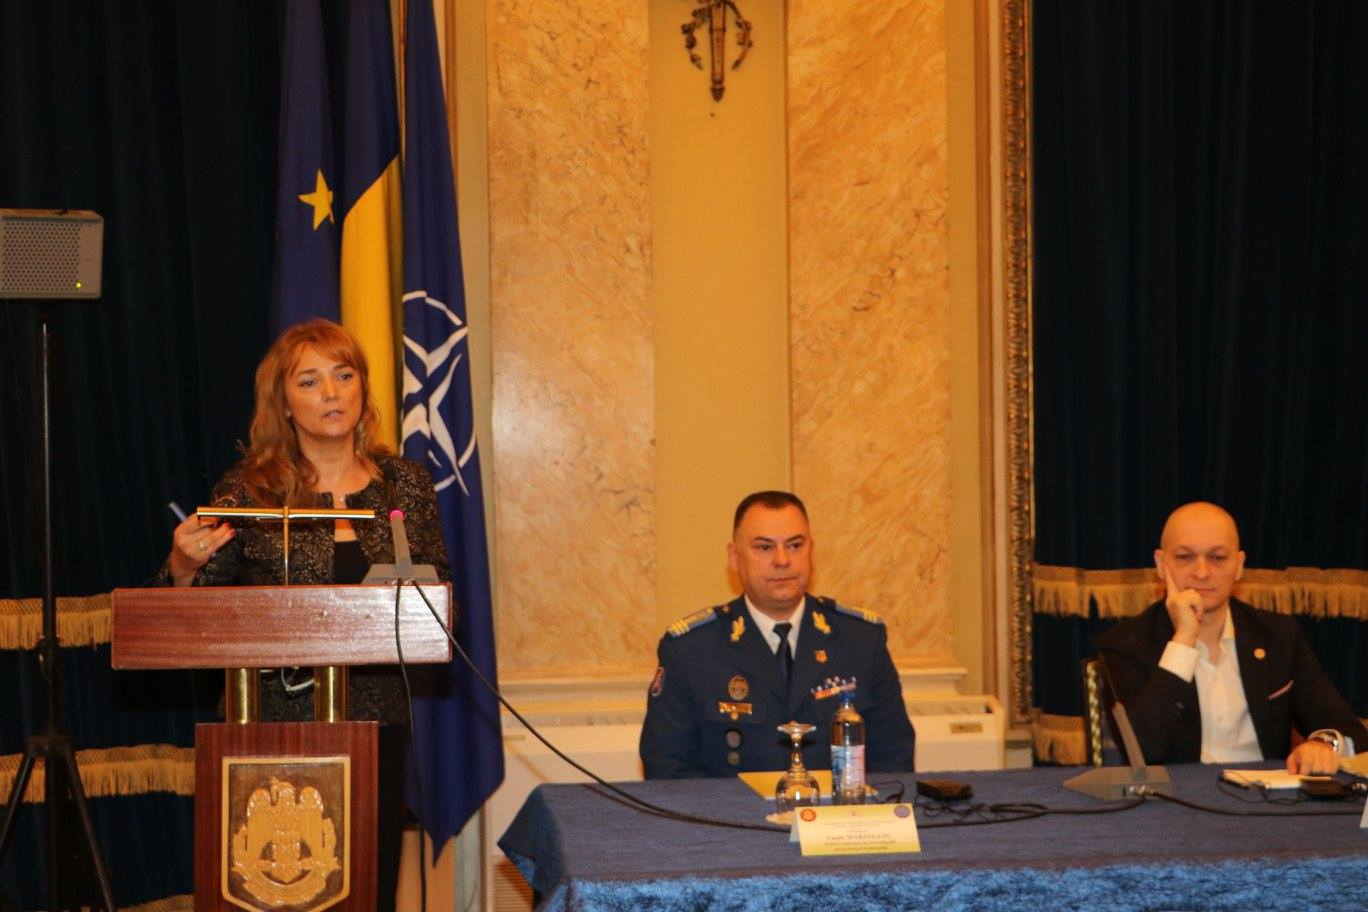 Dr. Sanela Dursun was the keynote speaker at the International Military Behavioural Sciences Conference hosted by Romania Ministry of National Defence in Bucharest in September 2016.